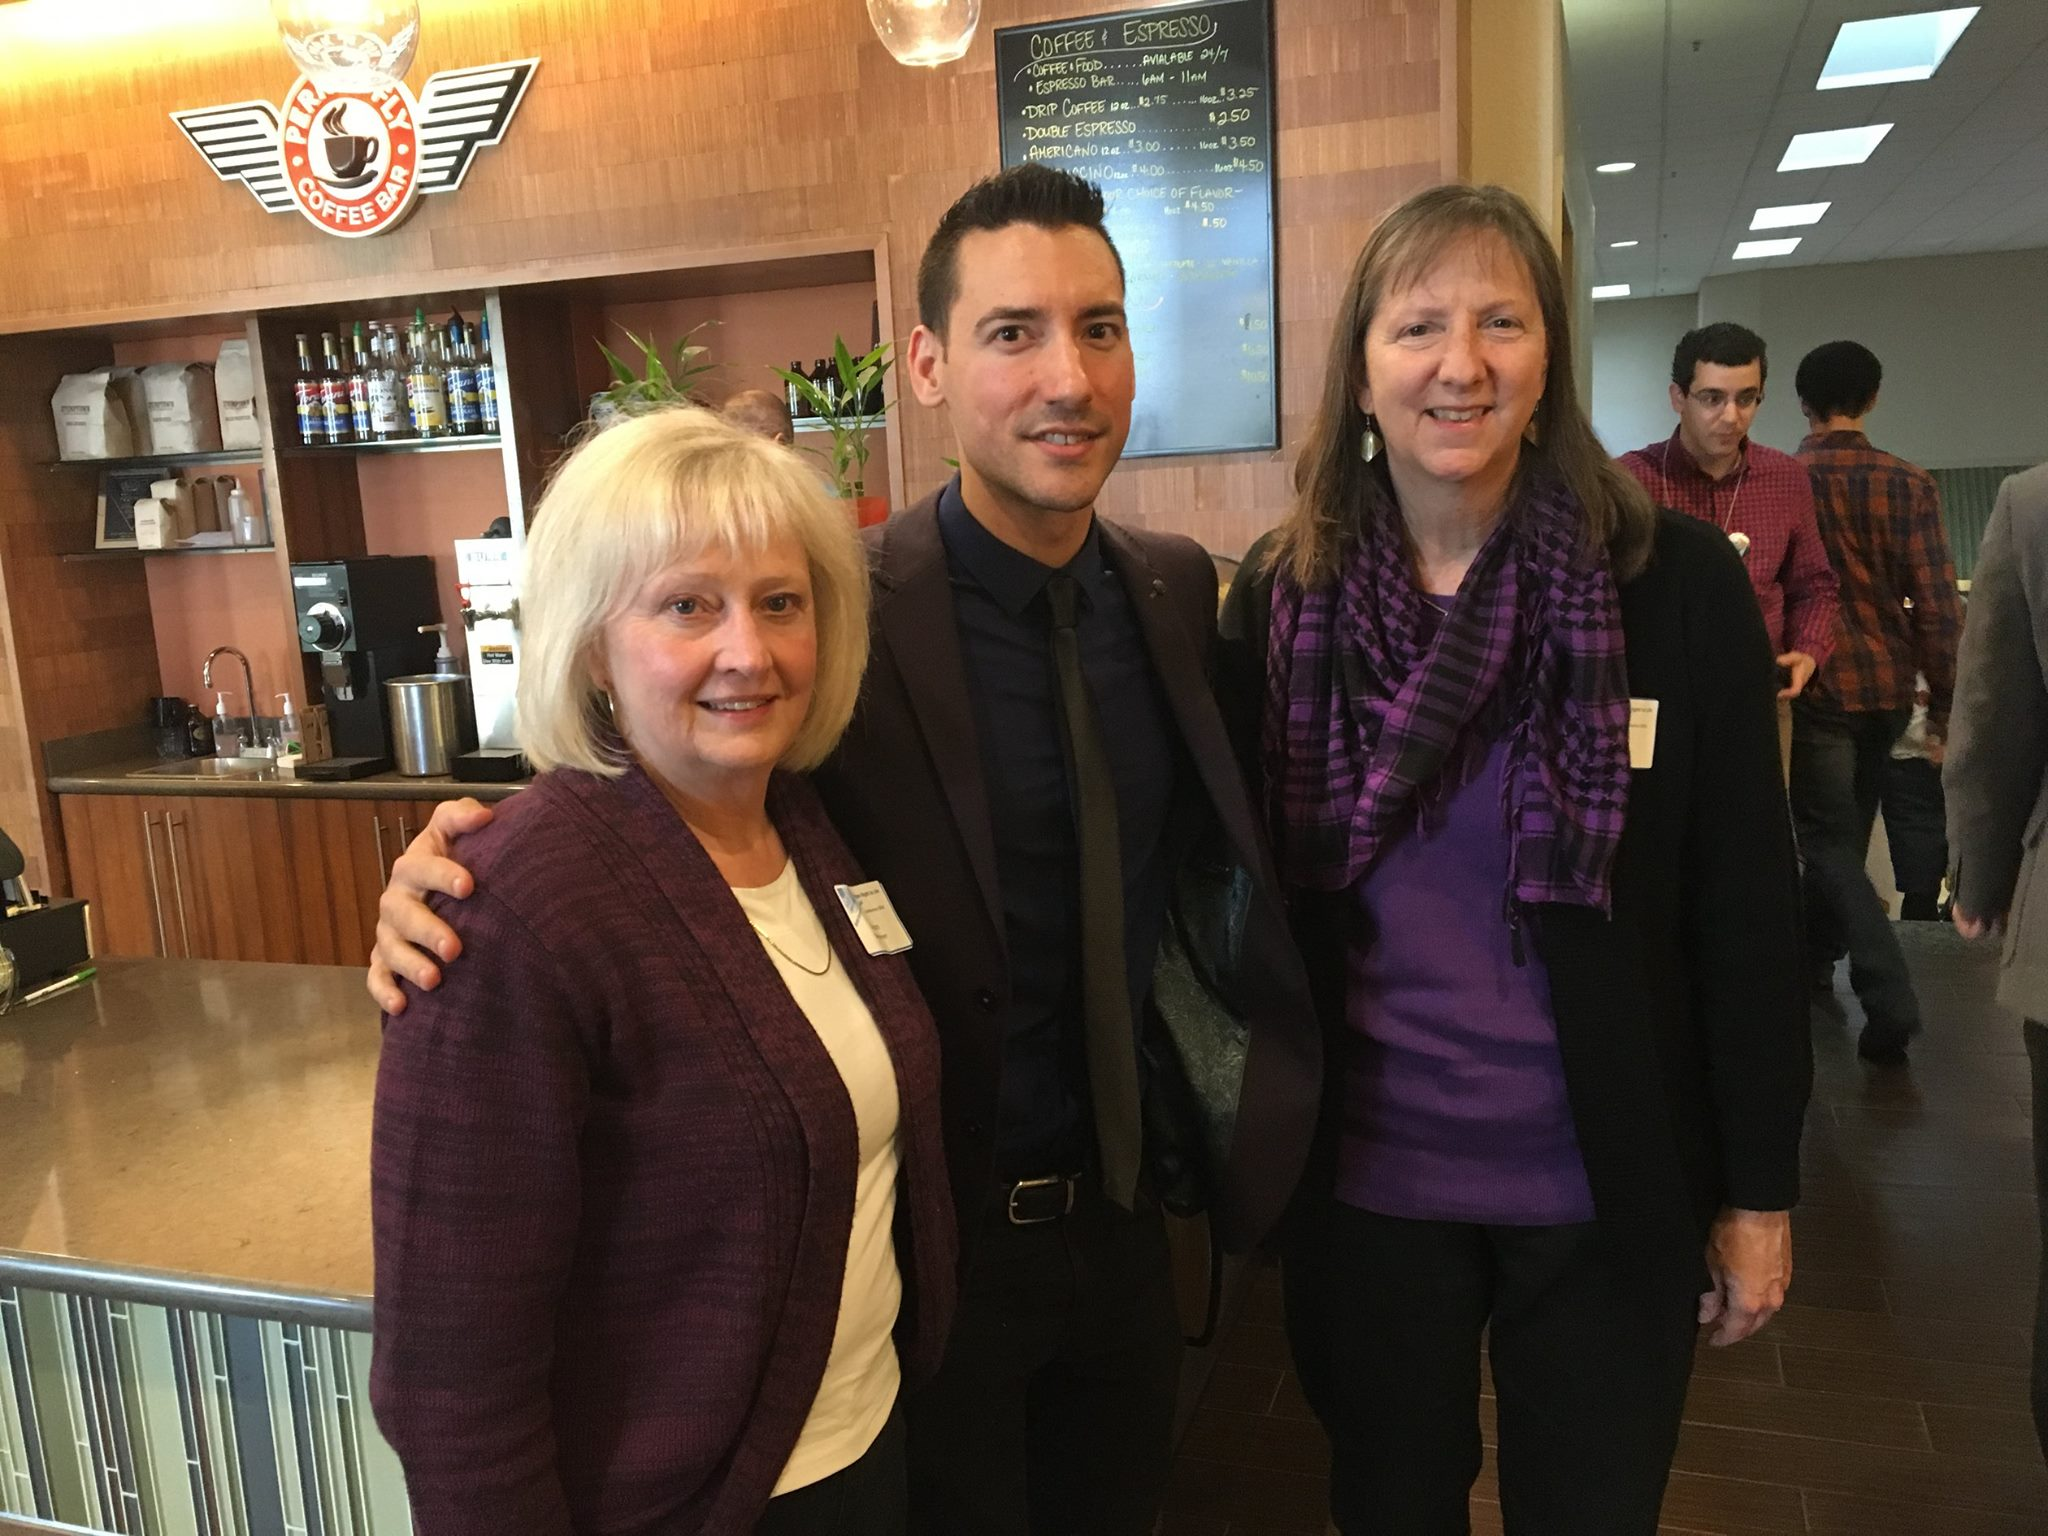 Eternal Perspective Ministries staff members with David Daleiden